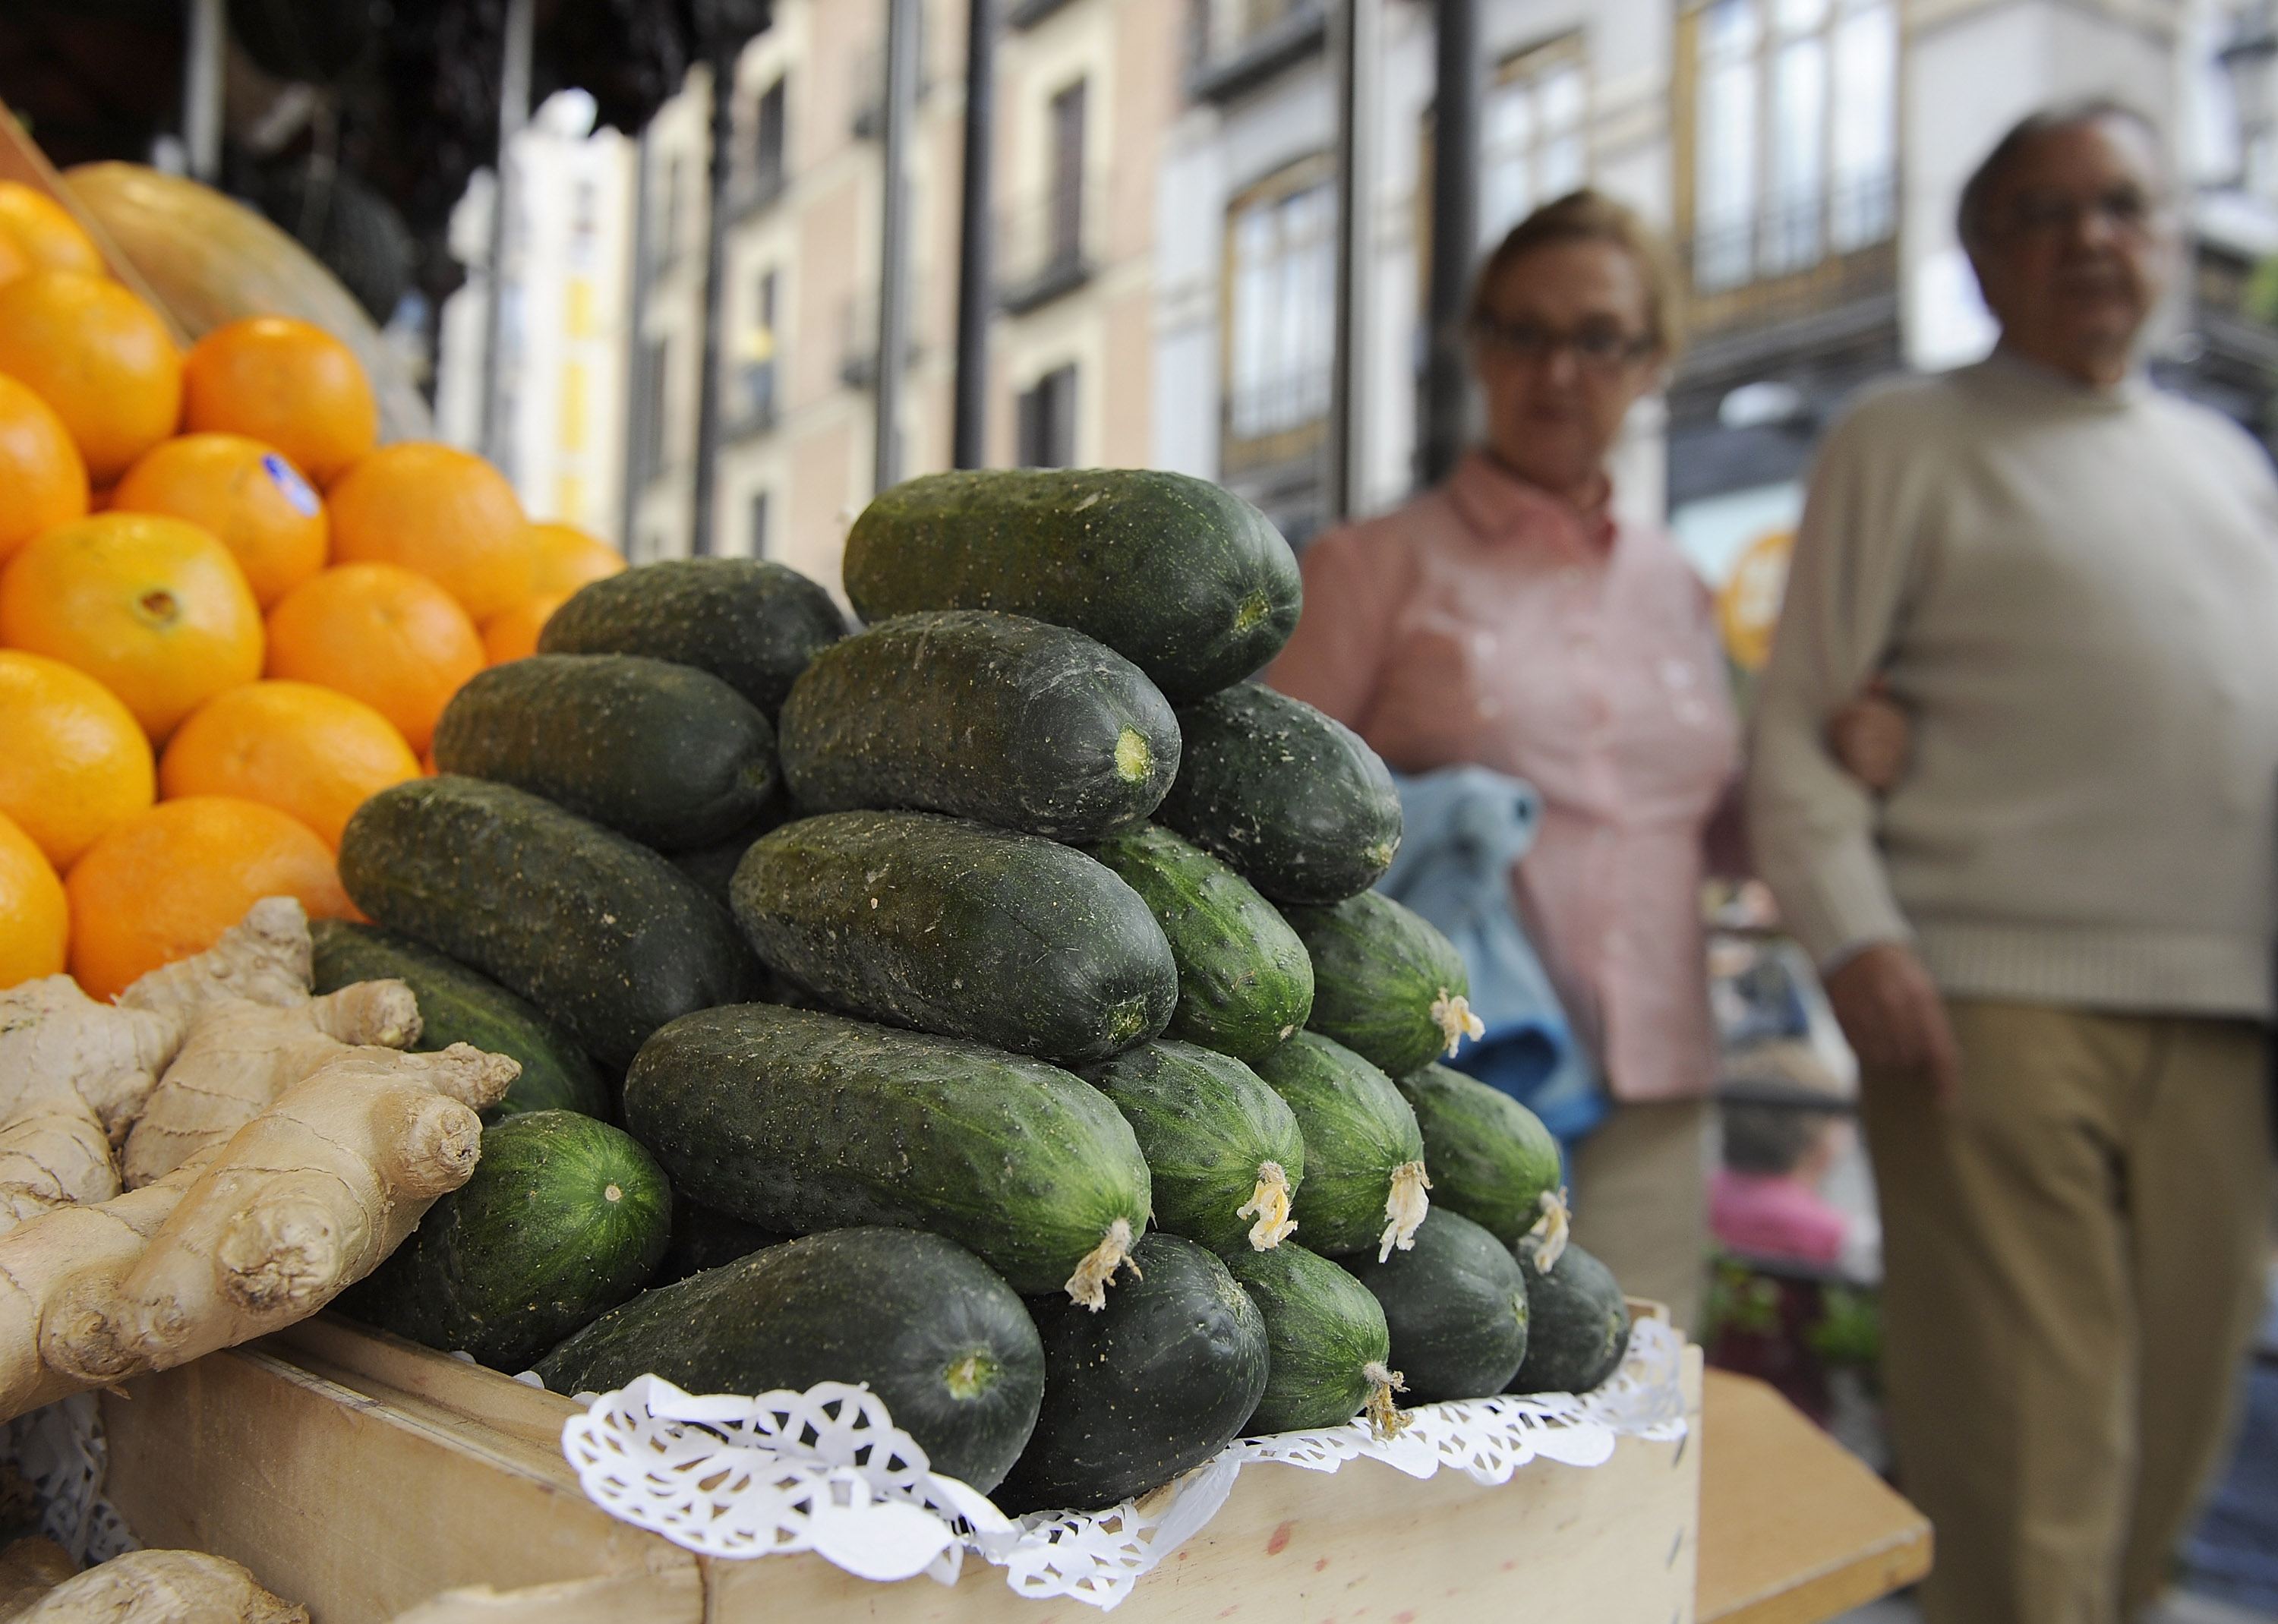 A Massive Salmonella Outbreak Linked to Cucumbers Has Spread to 39 States